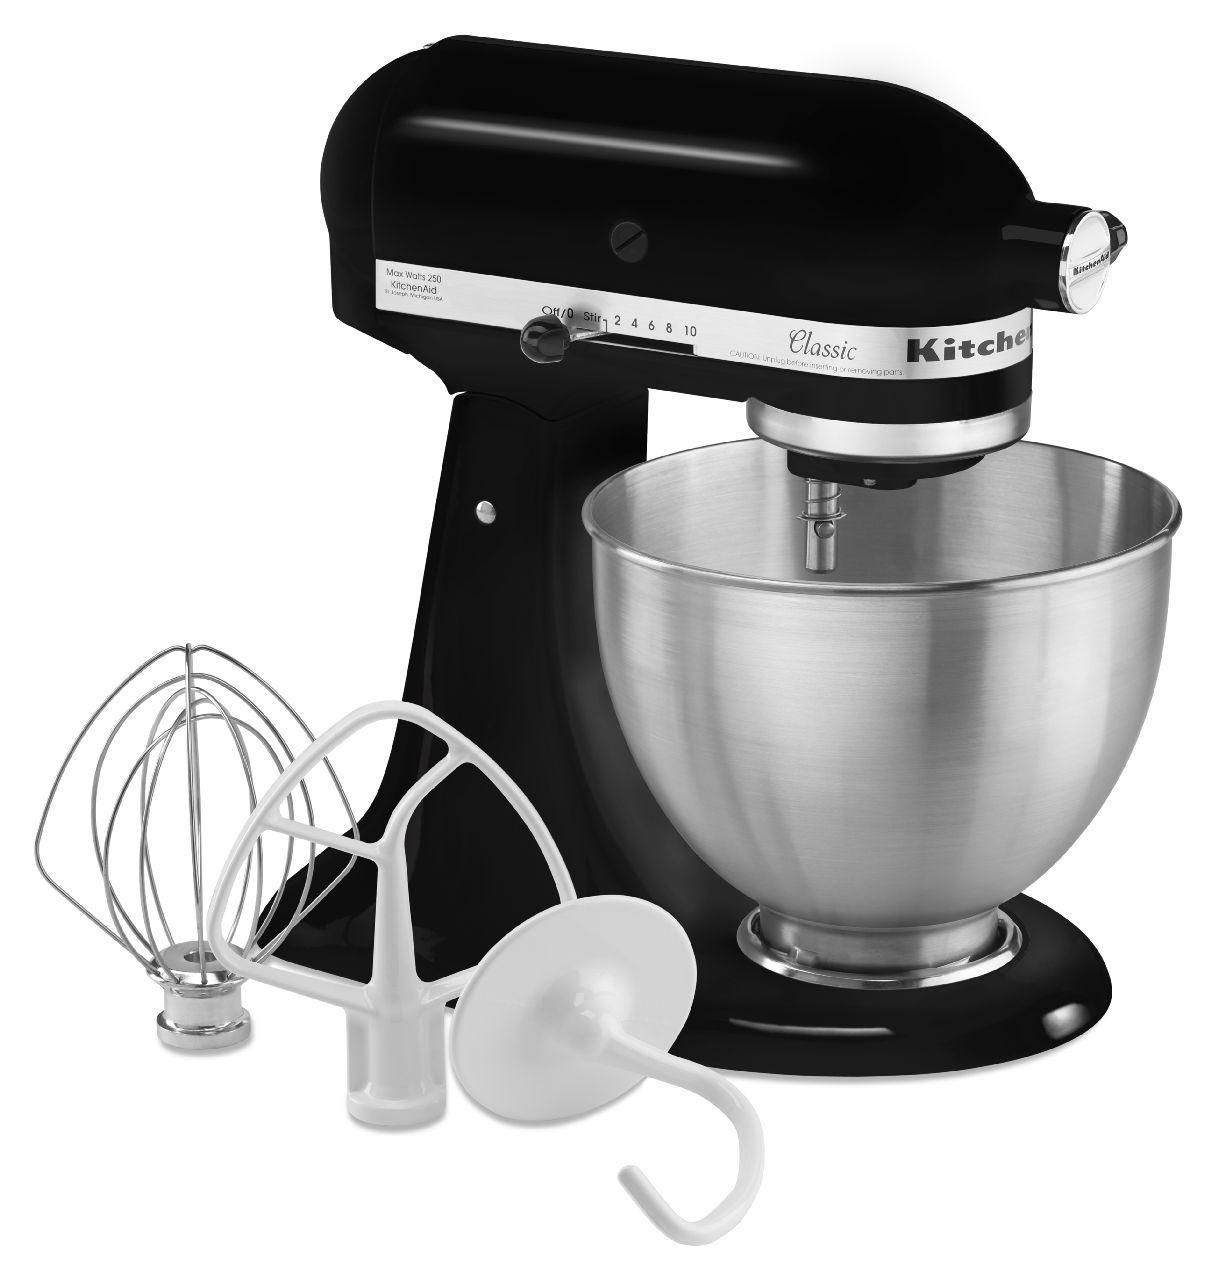 KitchenAid® Classic Series 4.5-Quart Tilt-Head Stand Mixer ...